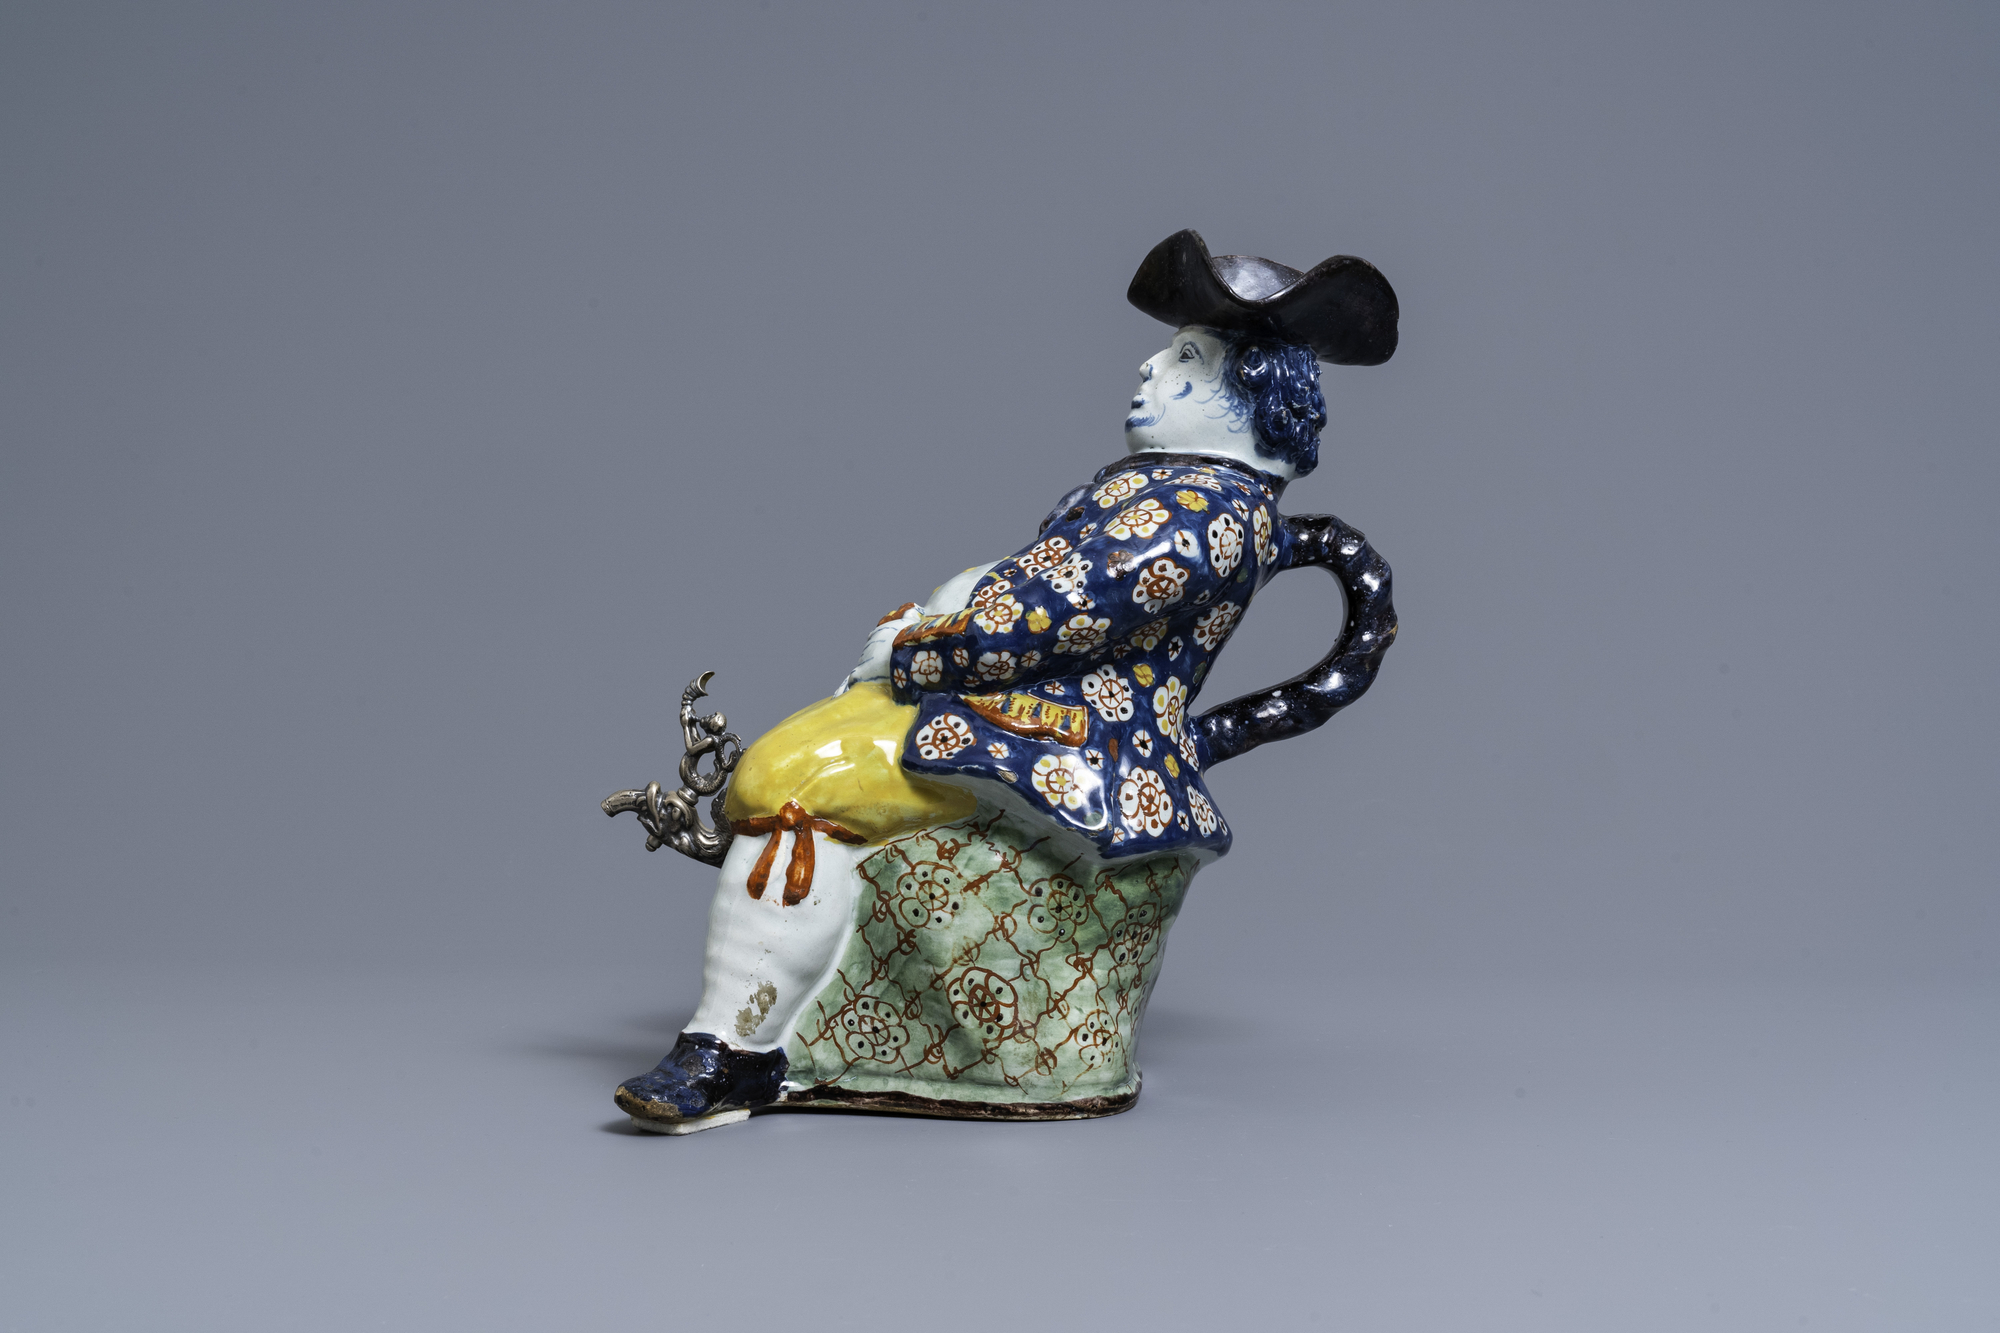 A large polychrome Dutch Delft 'Bobbejak' table fountain, 18th C. - Image 5 of 9